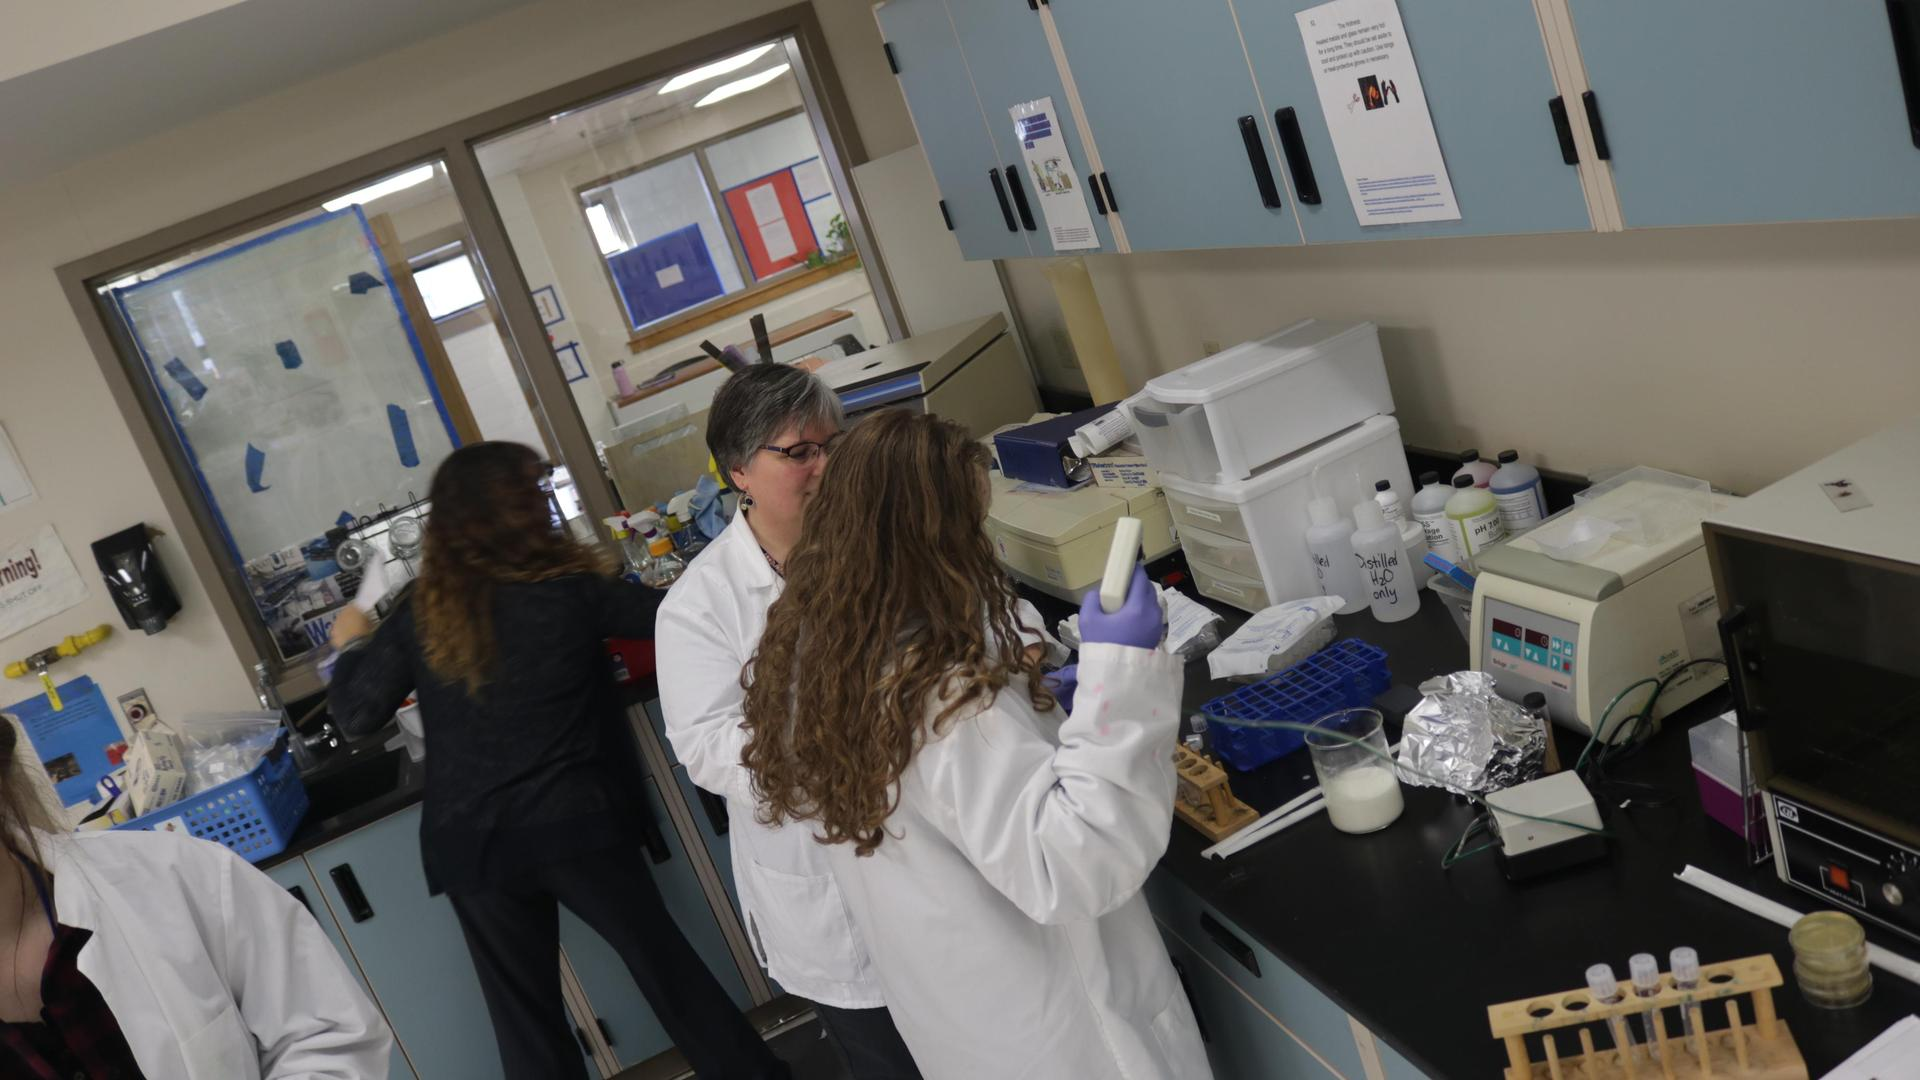 Lab classroom with students working